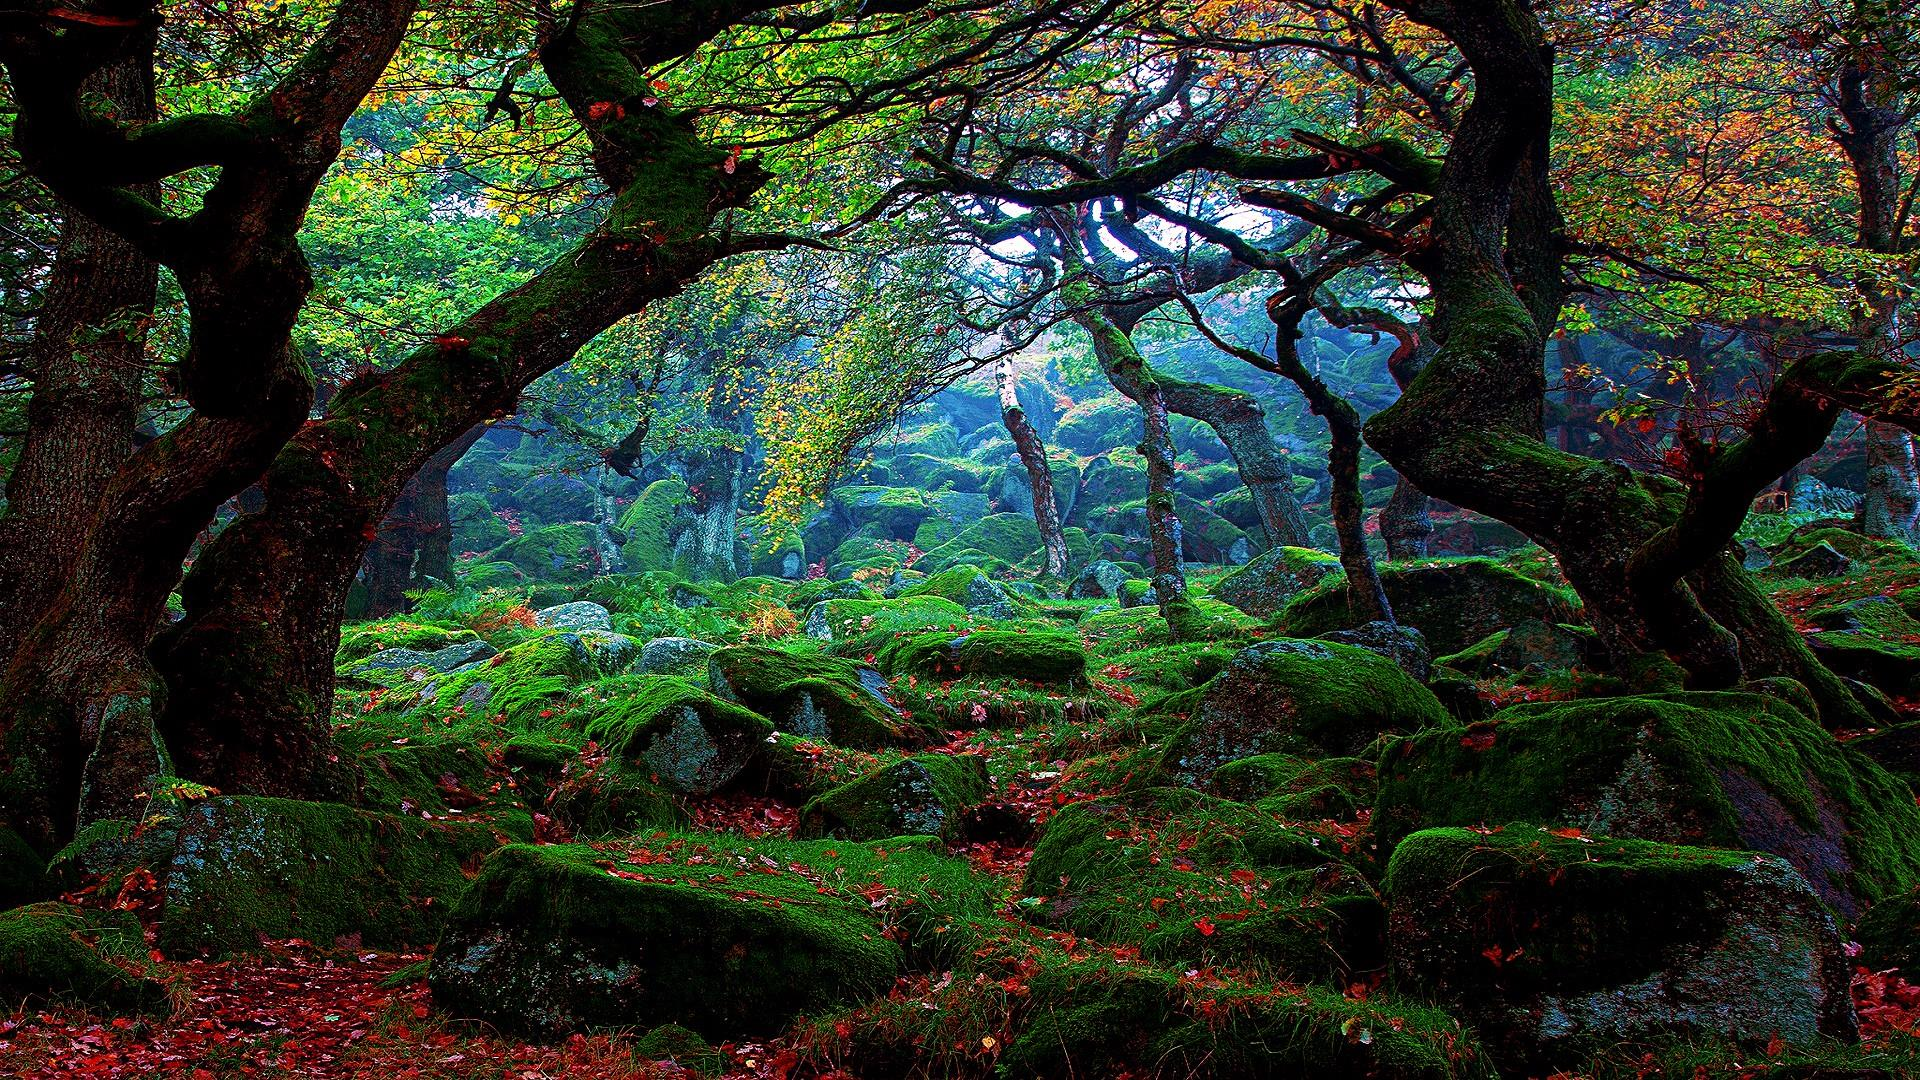 Forest Wallpapers Wallpapers All Superior Forest Wallpapers Backgrounds Wallpapersplanet Net